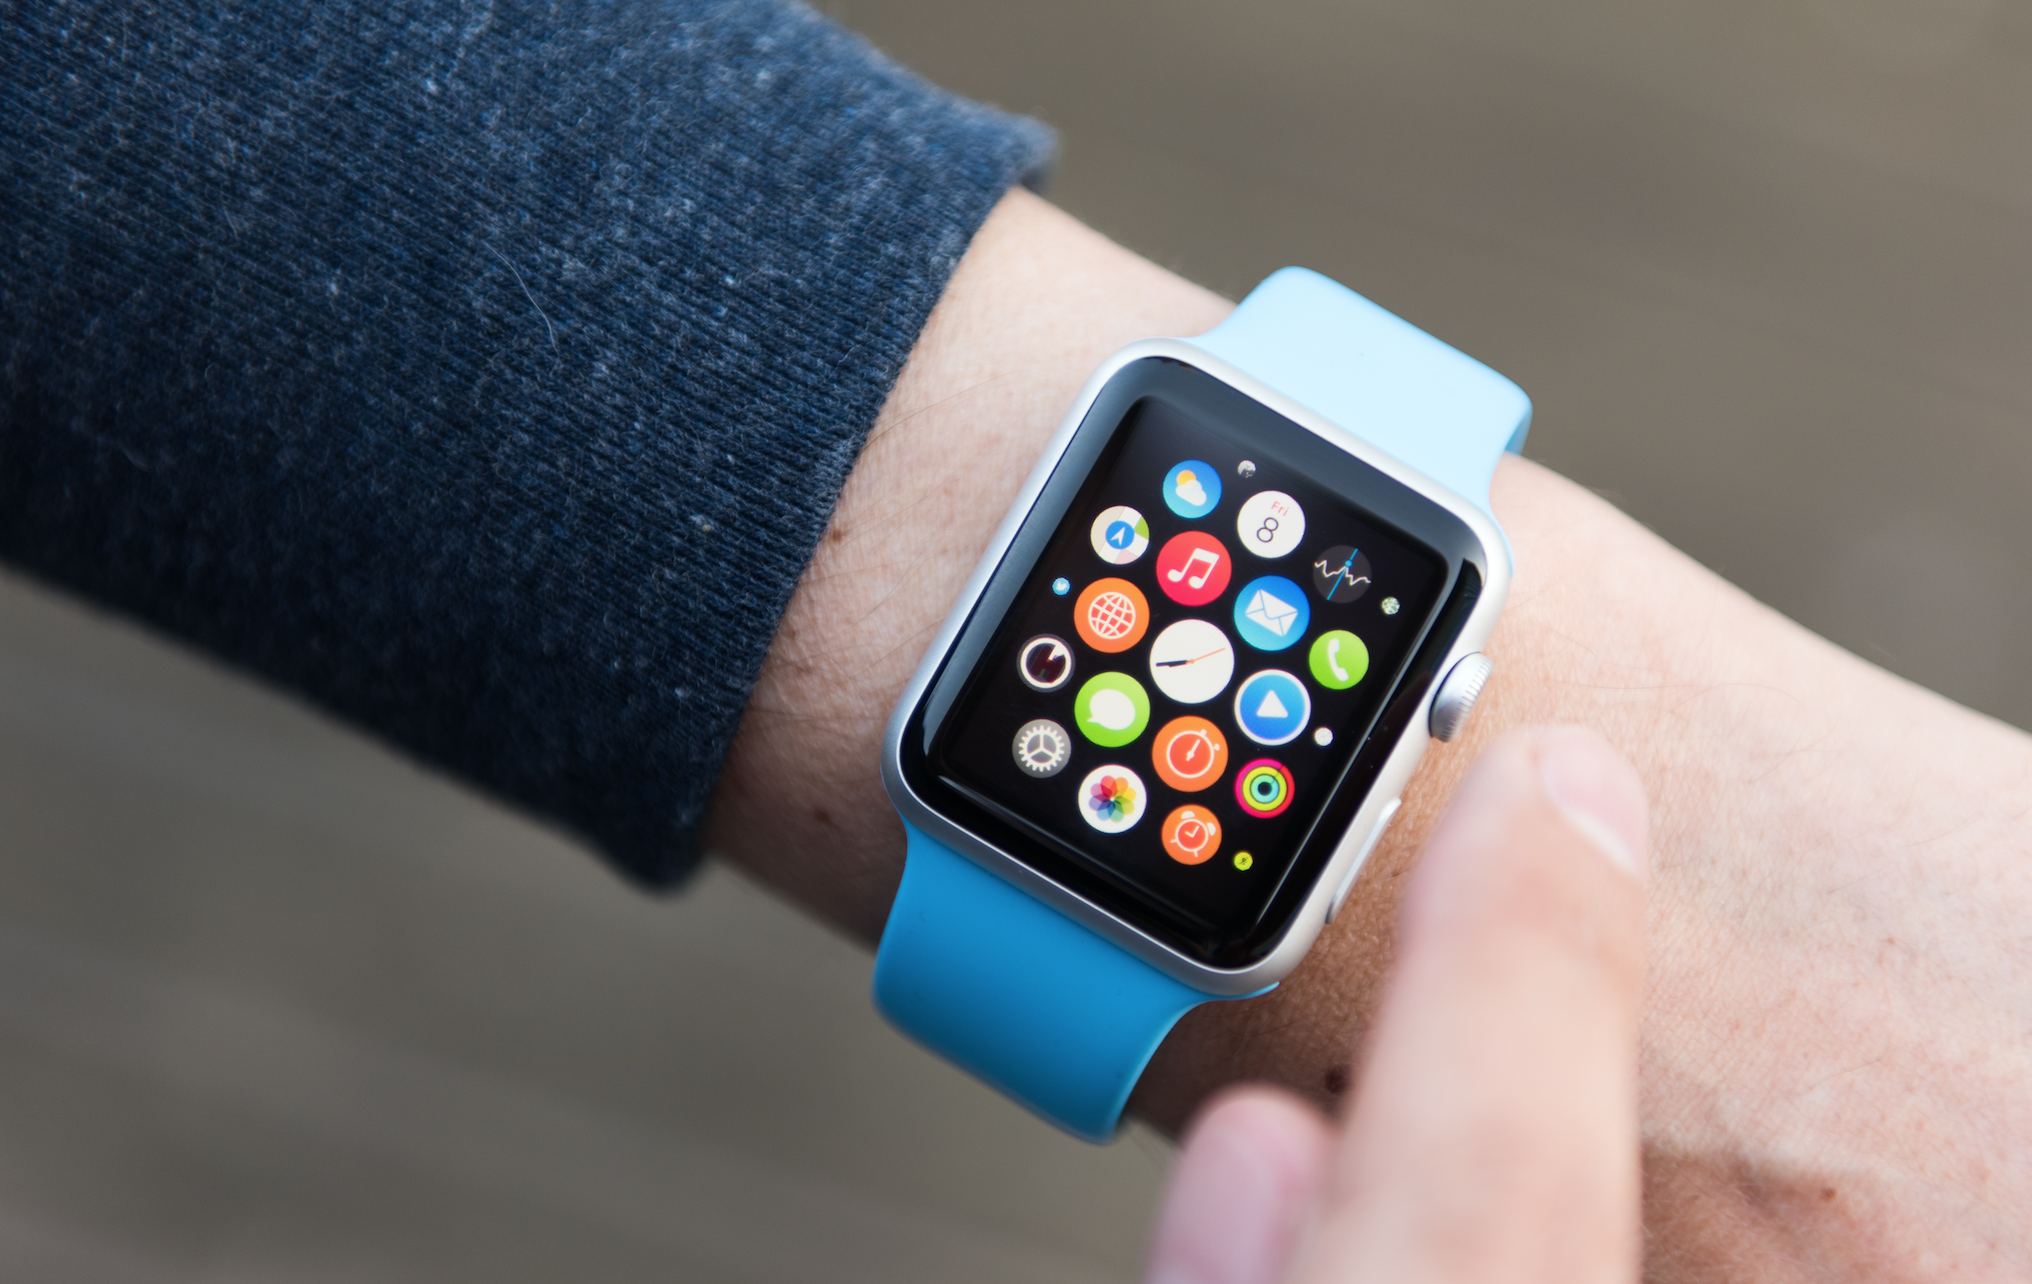 Apple launches new study of smart watches for early detection of COVID-19, especially in risk groups